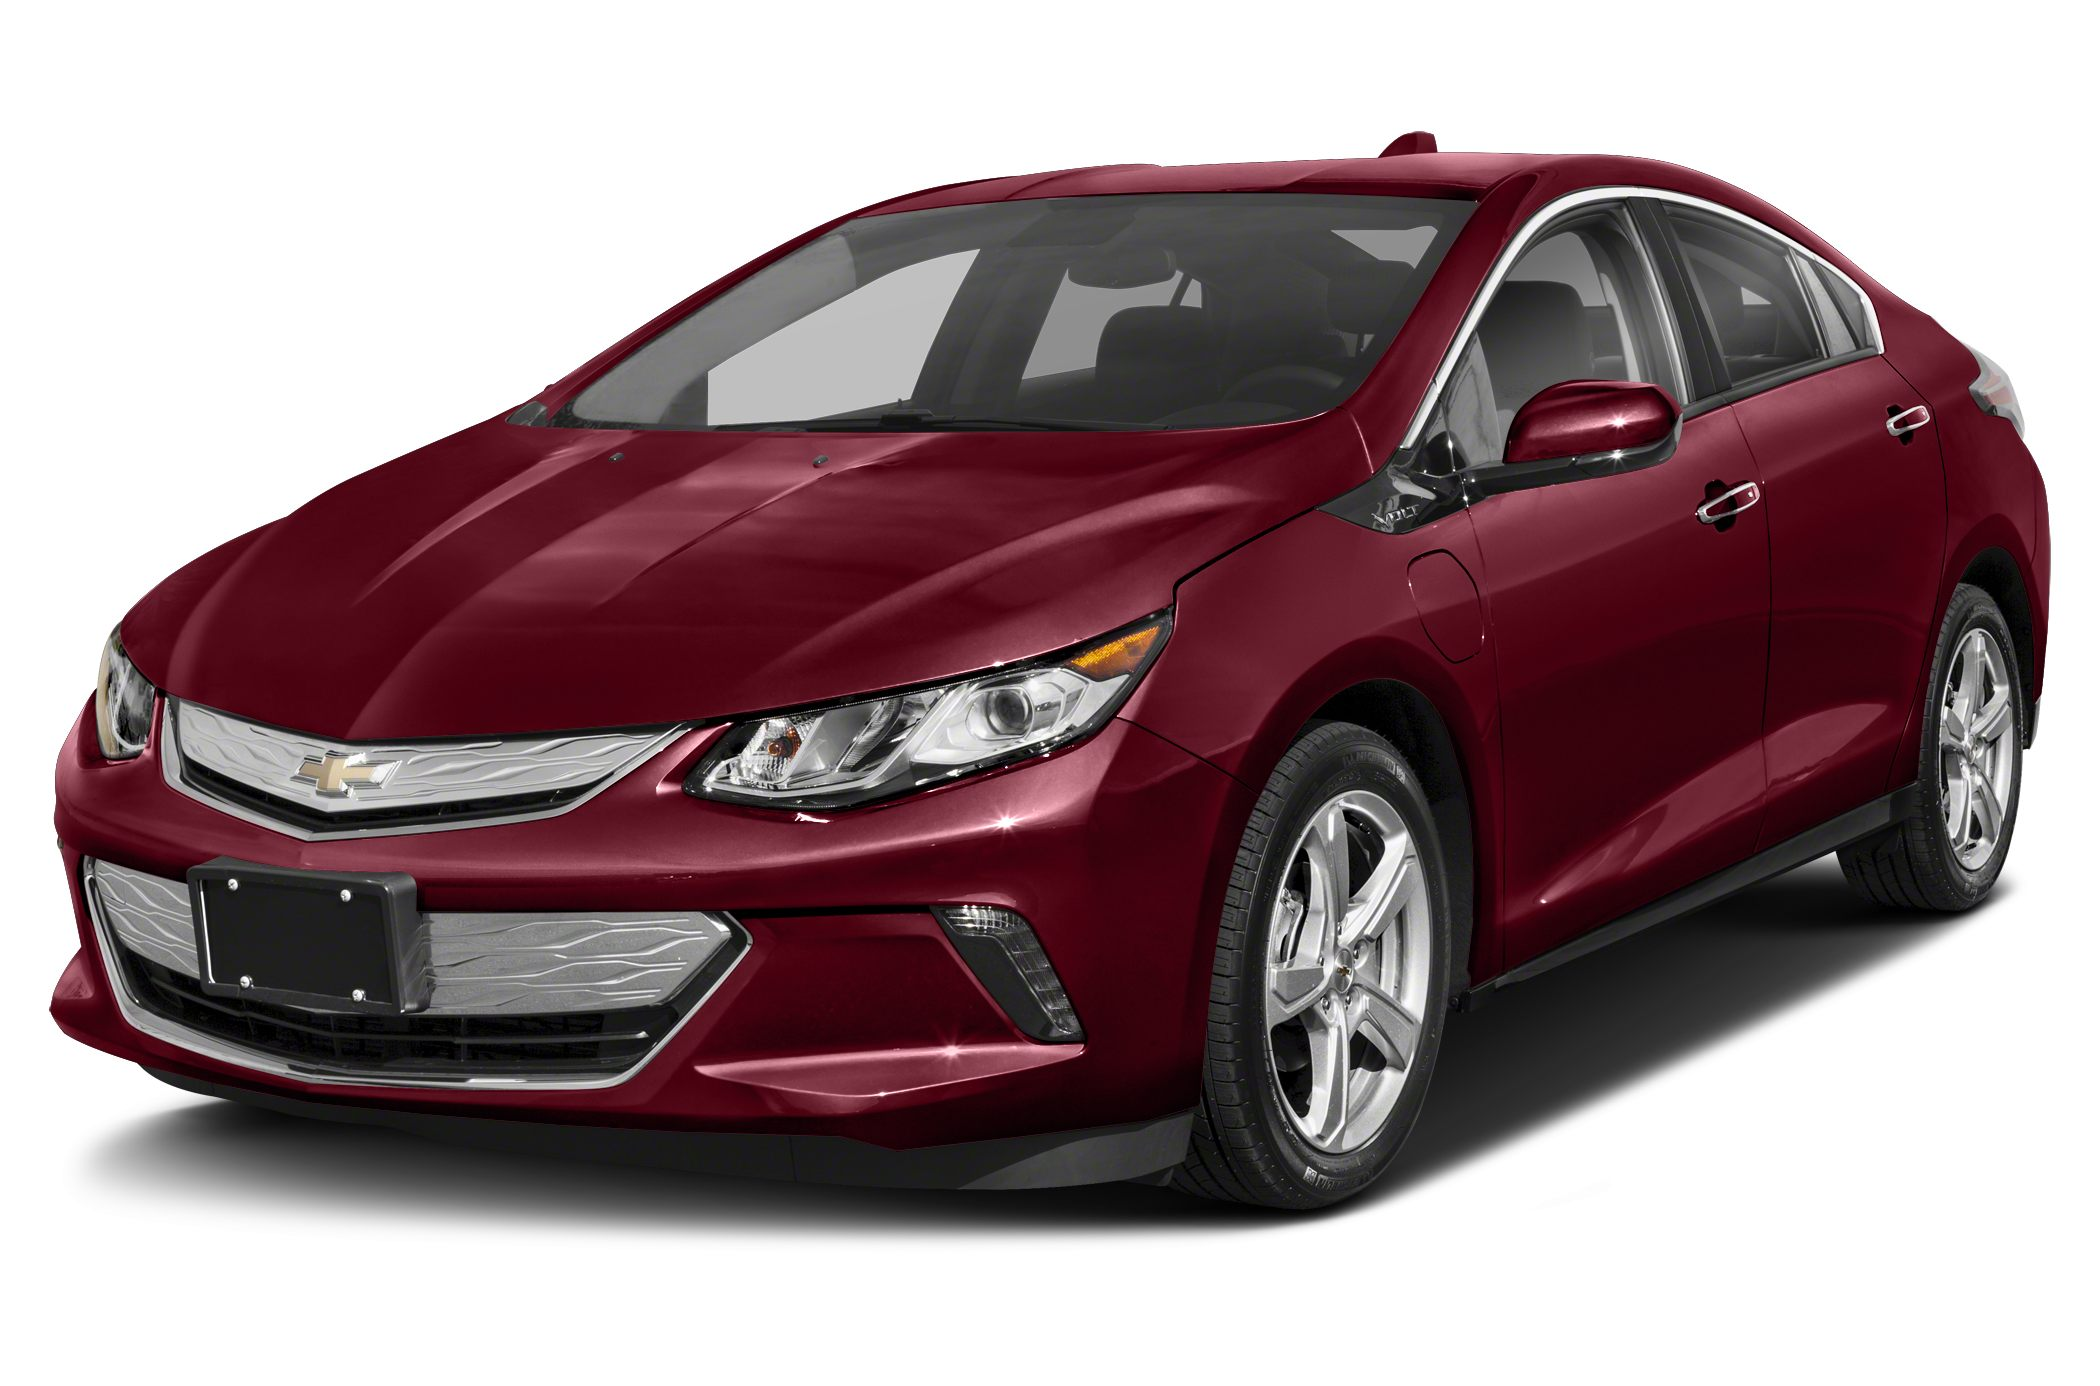 2016 Chevy Volt rated at 106 MPGe, 53 miles of pure EV range